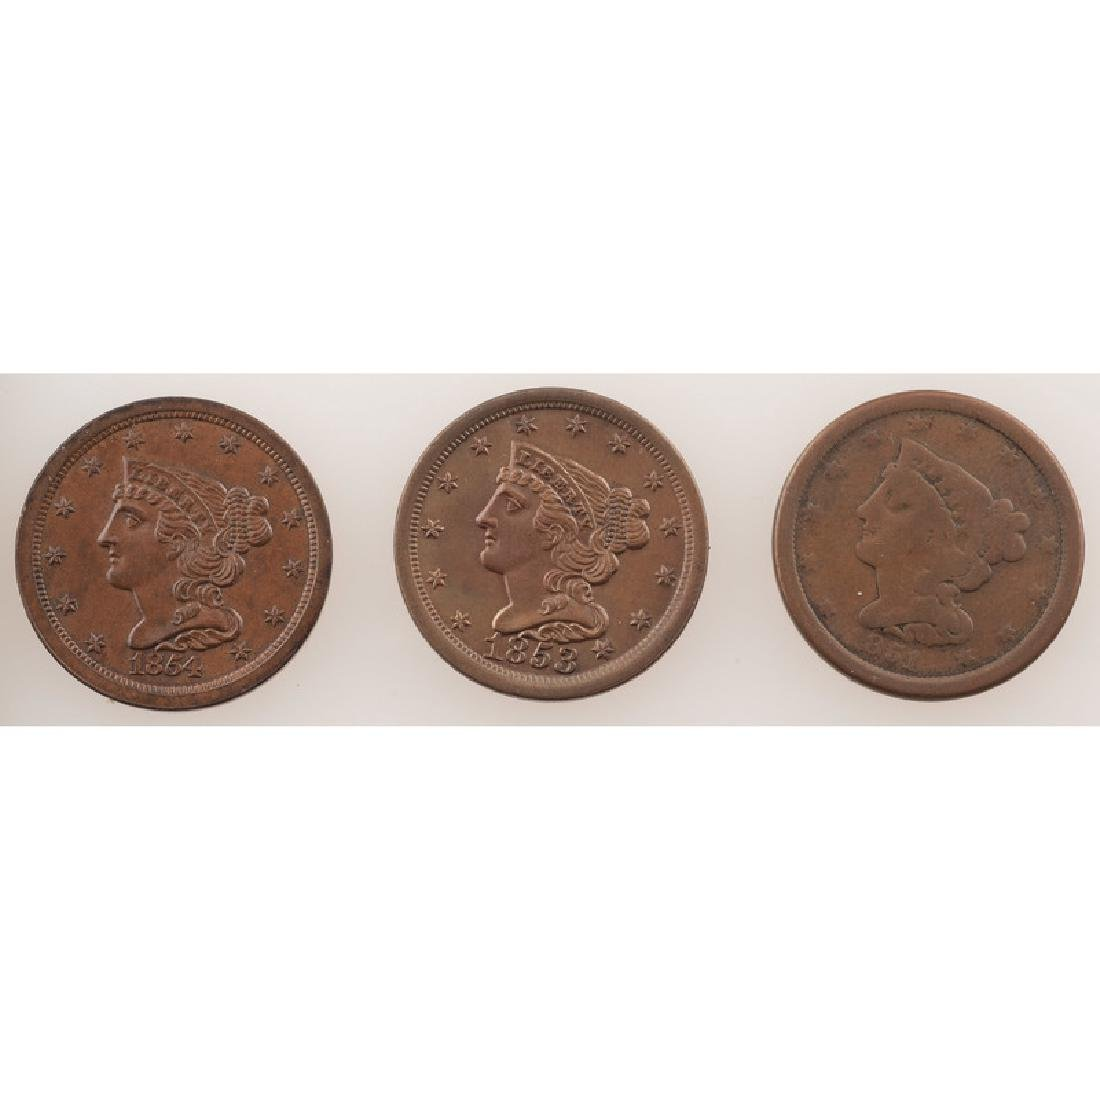 United States Braided Hair Half Cents 1851-1854